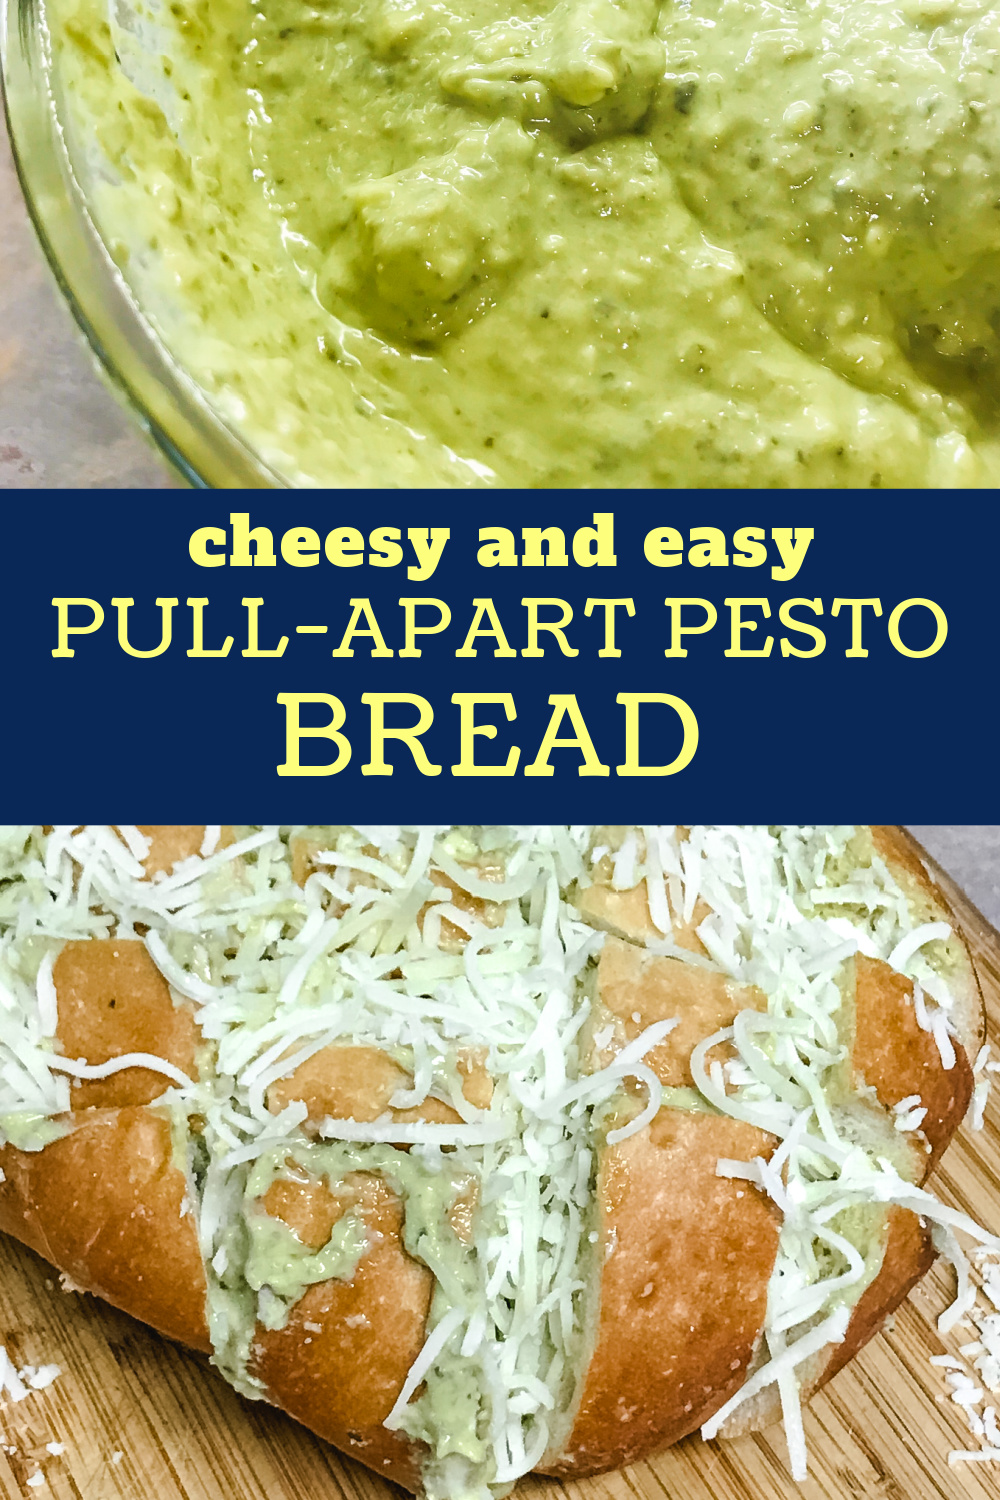 Creamy pesto in a bowl with a loaf of Cheesy Pull-Apart Pesto Bread.